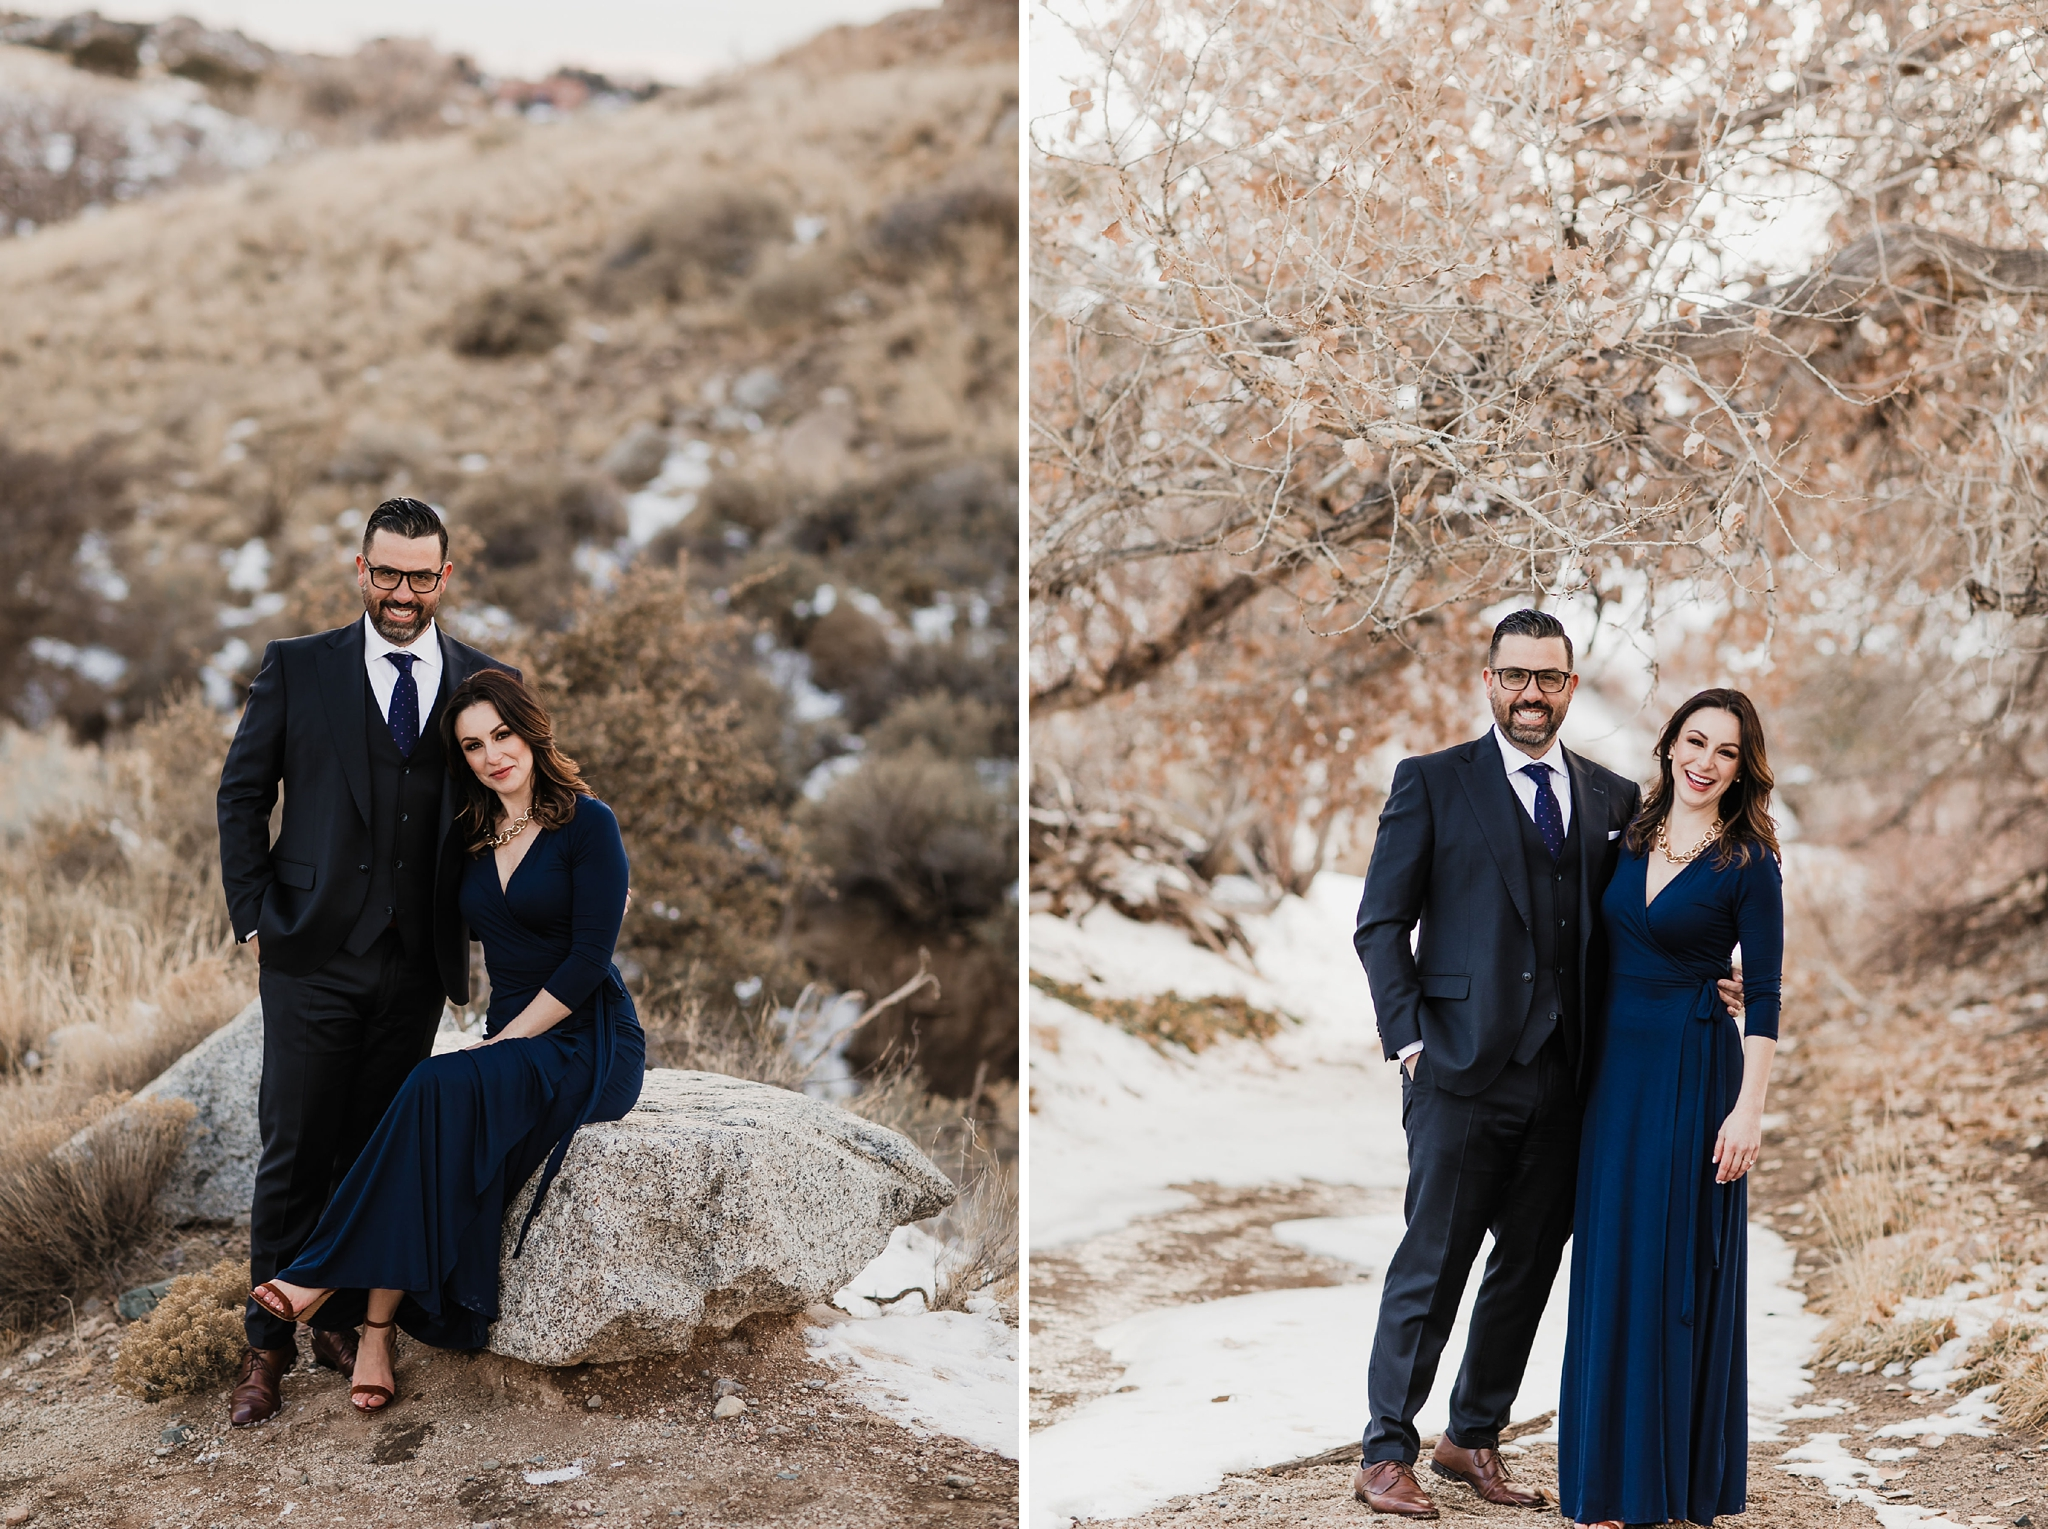 Alicia+lucia+photography+-+albuquerque+wedding+photographer+-+santa+fe+wedding+photography+-+new+mexico+wedding+photographer+-+new+mexico+wedding+-+new+mexico+engagement+-+engagement+style+-+style+lookbook_0111.jpg